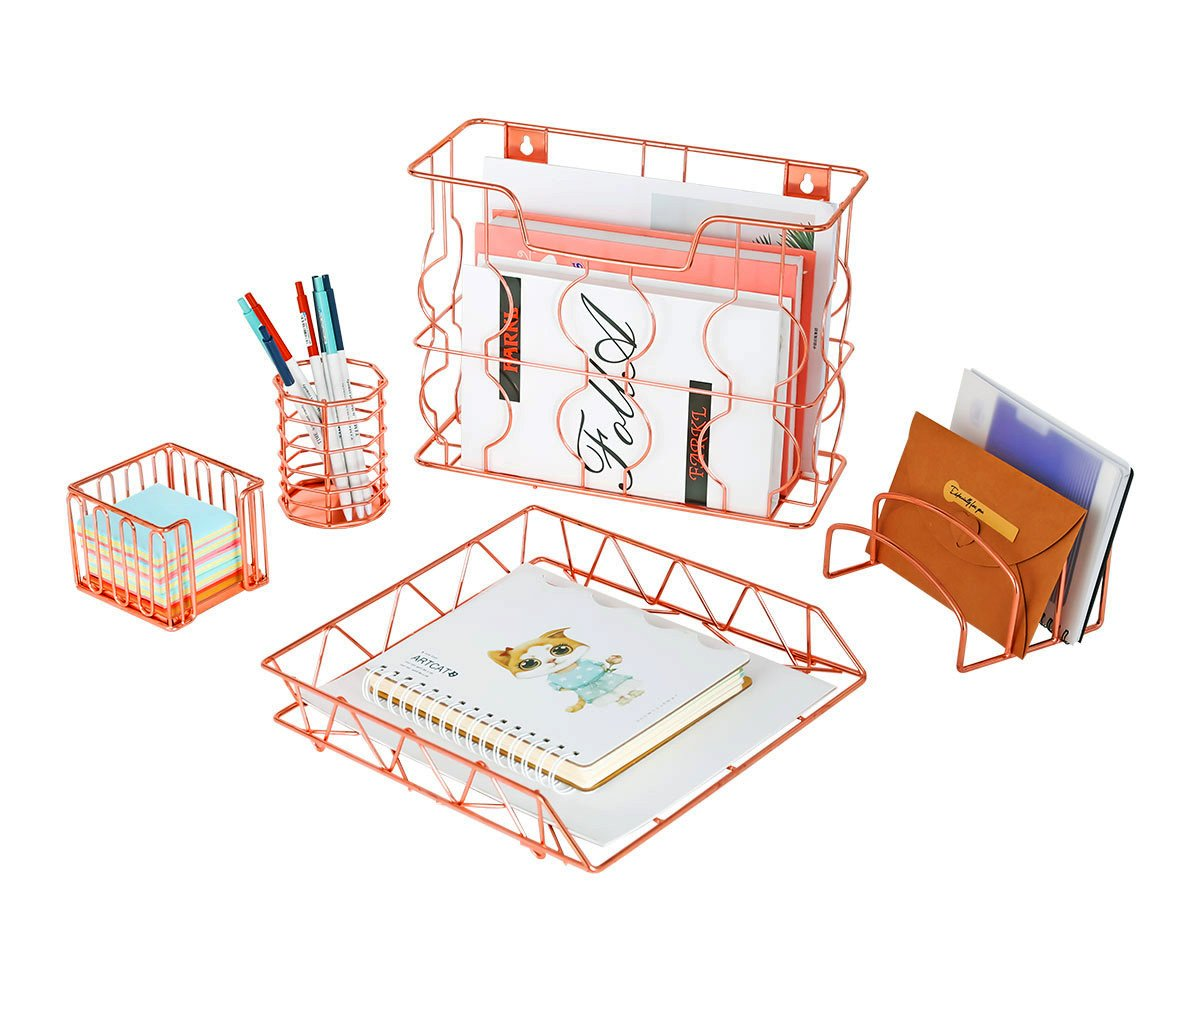 PAG Rose Gold Office Supplies 5 in 1 Metal Desk Organizer Set - Hanging File Organizer, File Tray, Letter Sorter, Pencil Holder and Stick Note Holder